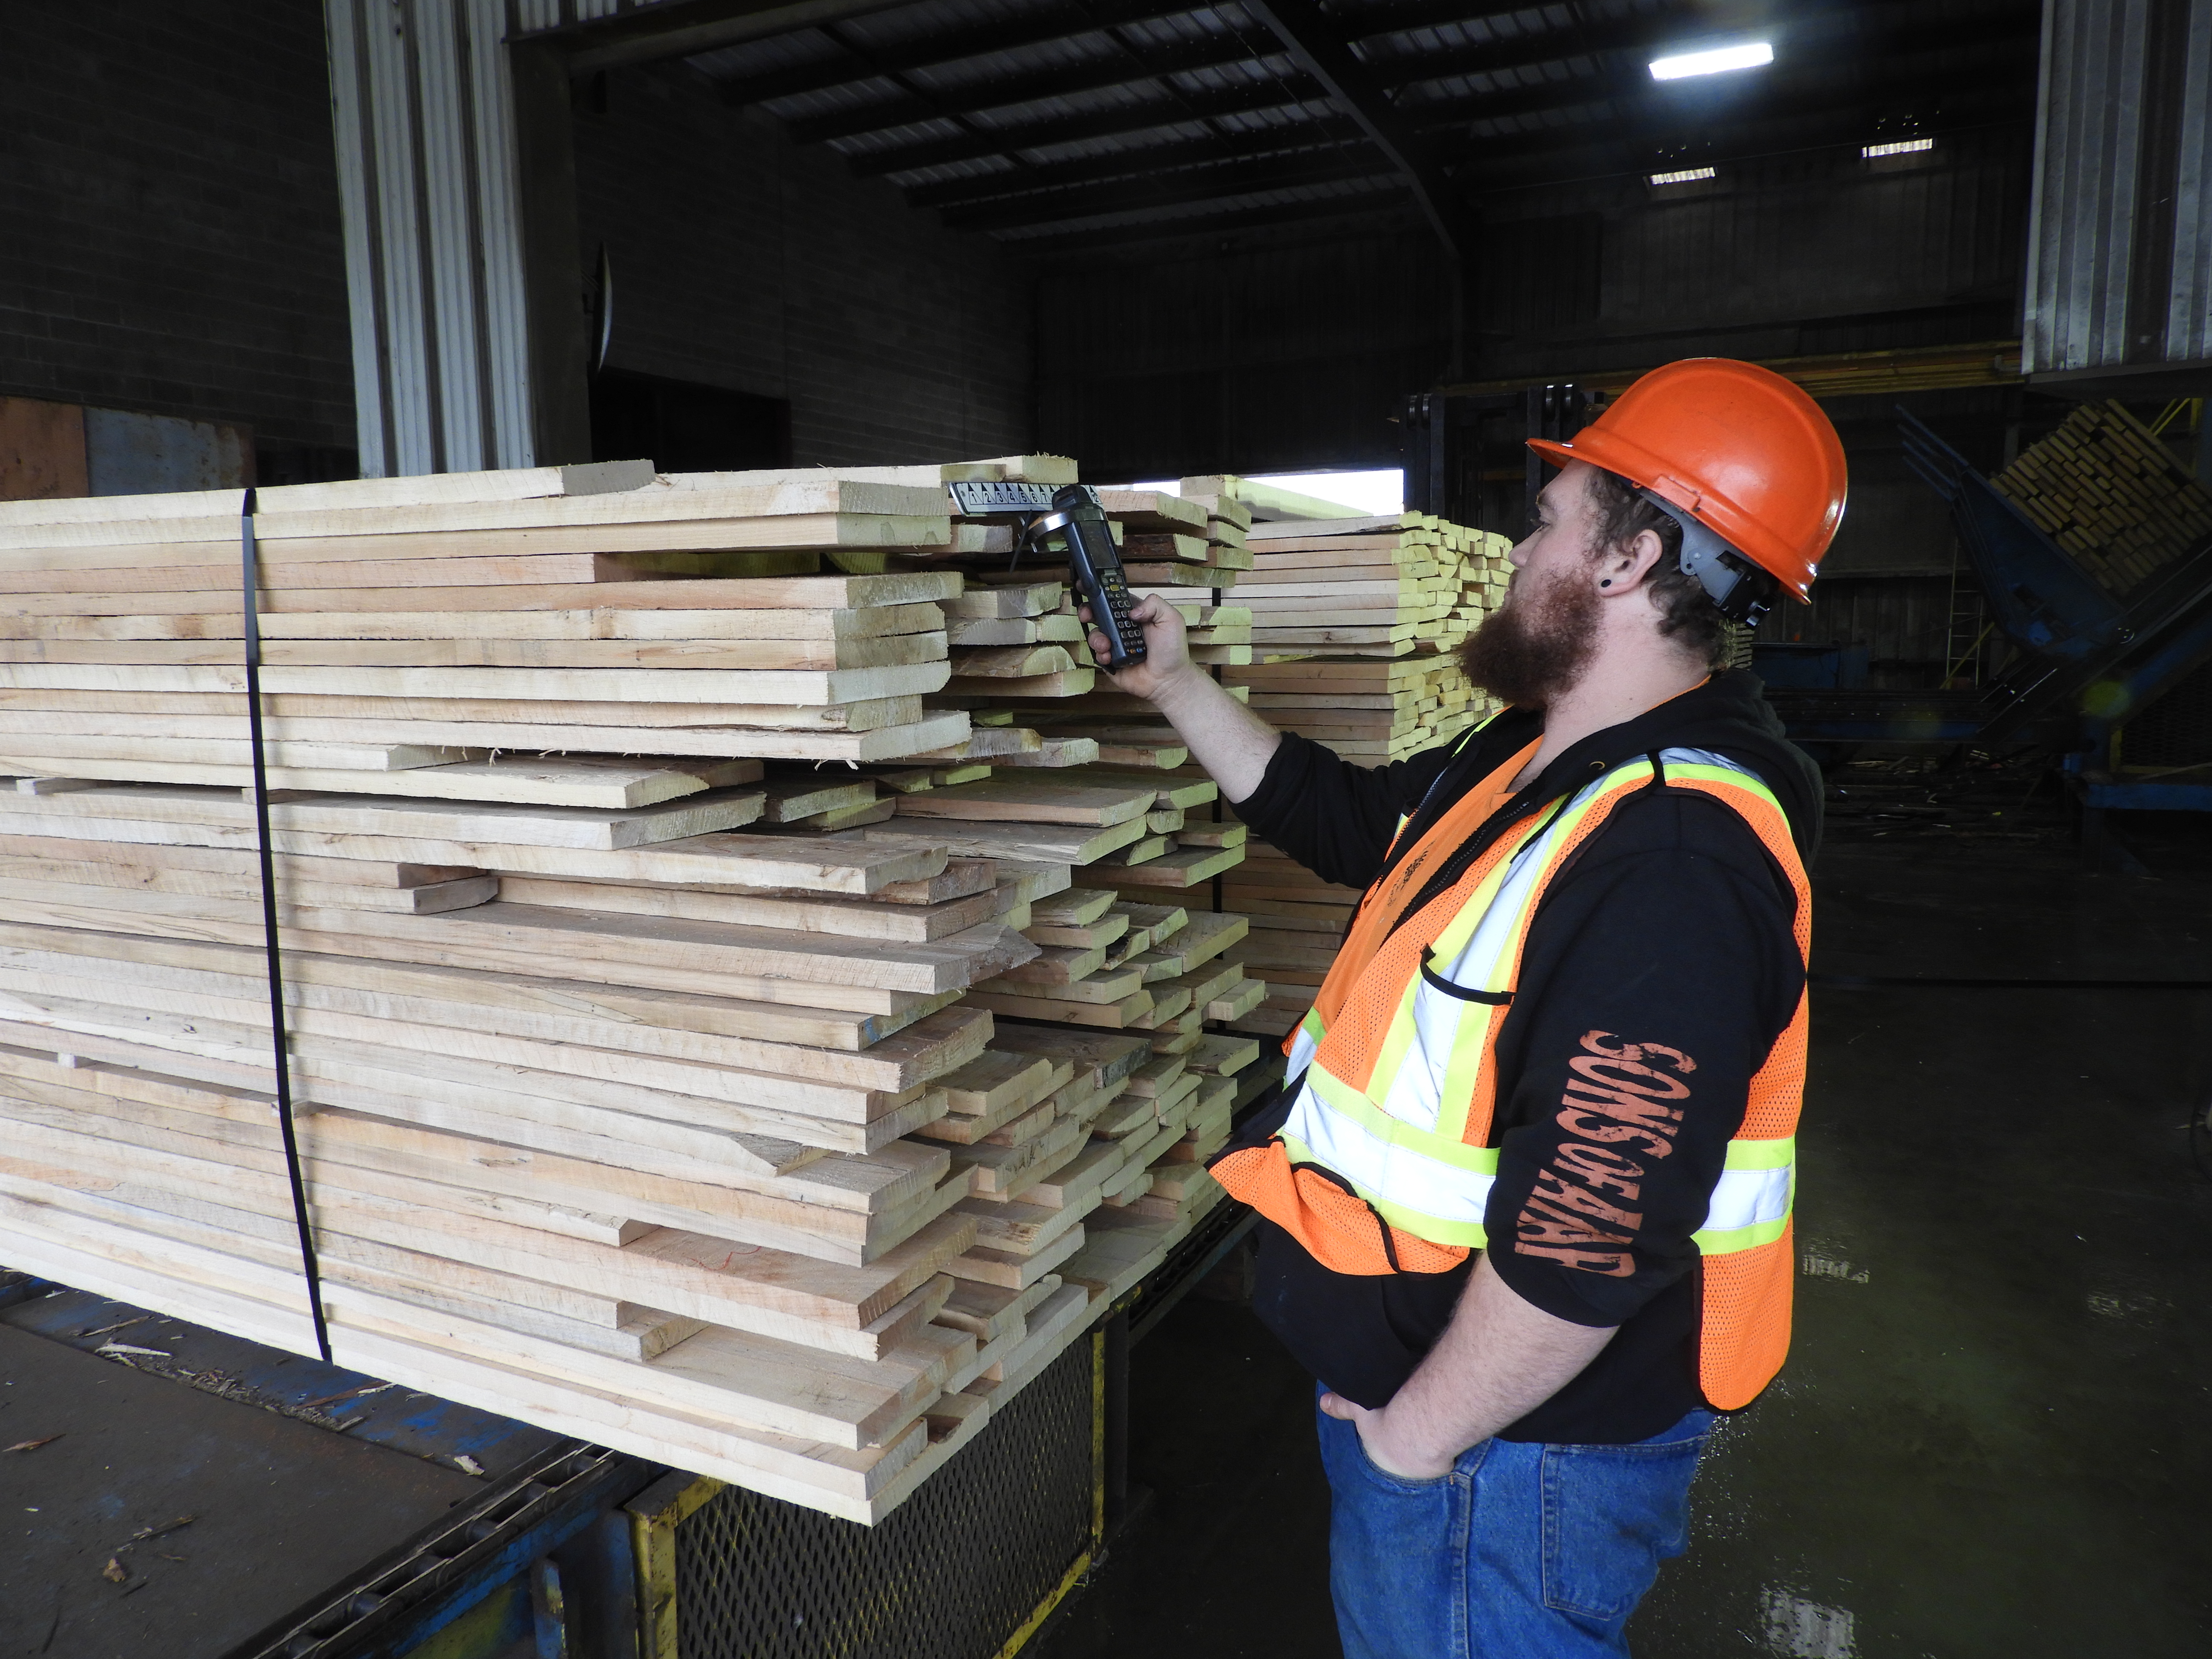 Man in construction uniform inspecting stacks of wood in wearhouse.